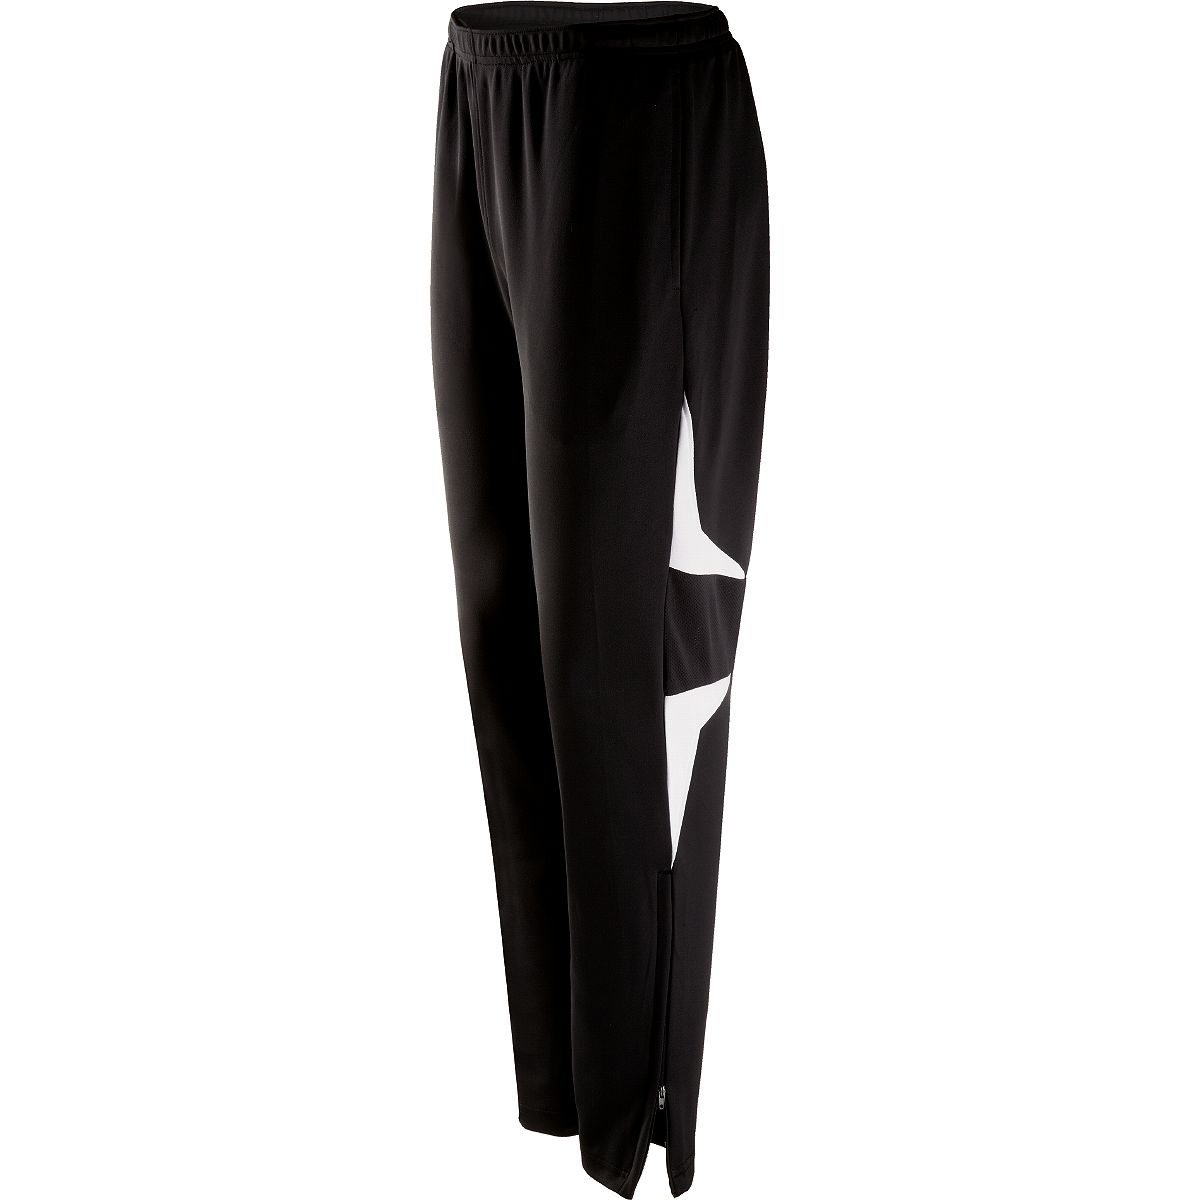 Holloway Traction Pant Bk/Bk/Wh M - image 1 of 1